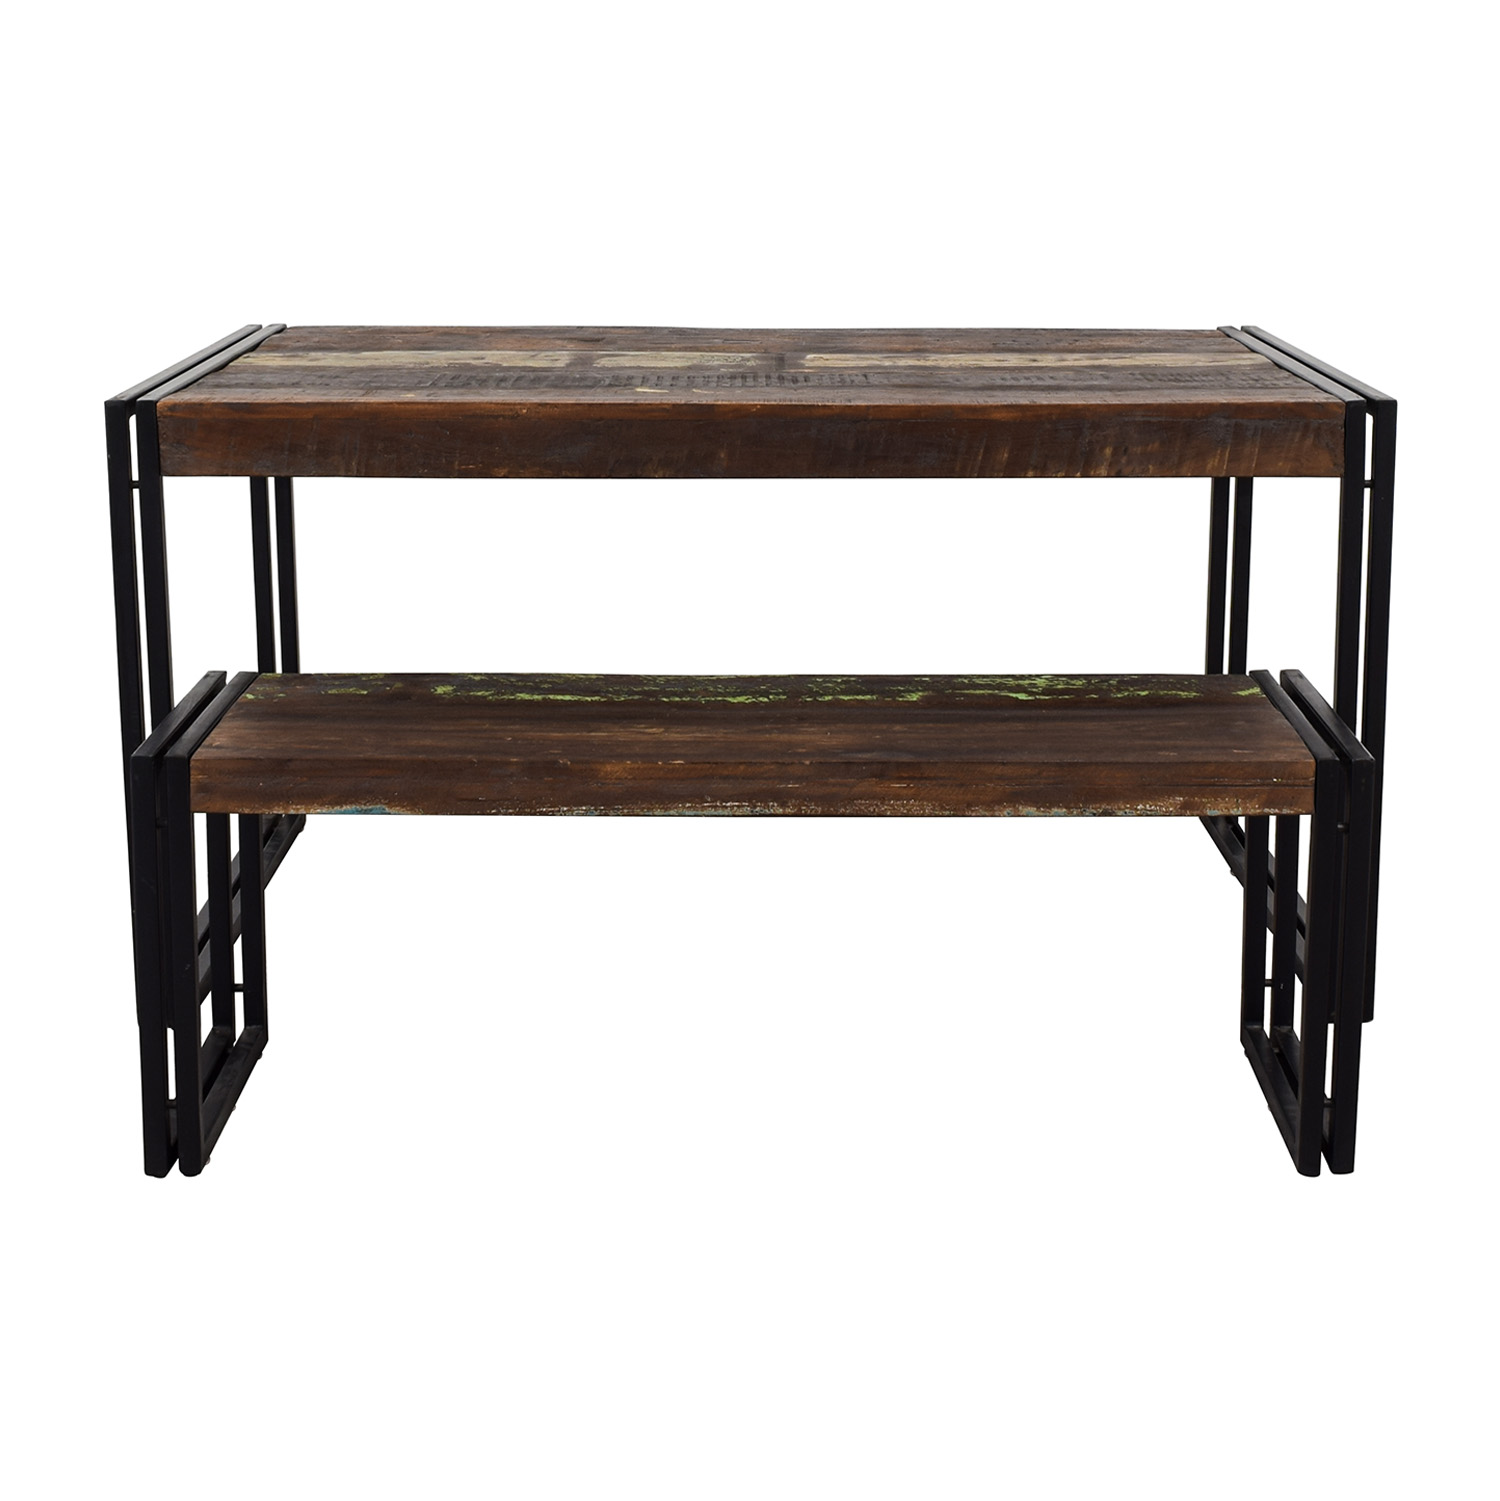 Timbergirl Timbergirl Solid Reclaimed Wood Dining Table With Bench Dining Sets